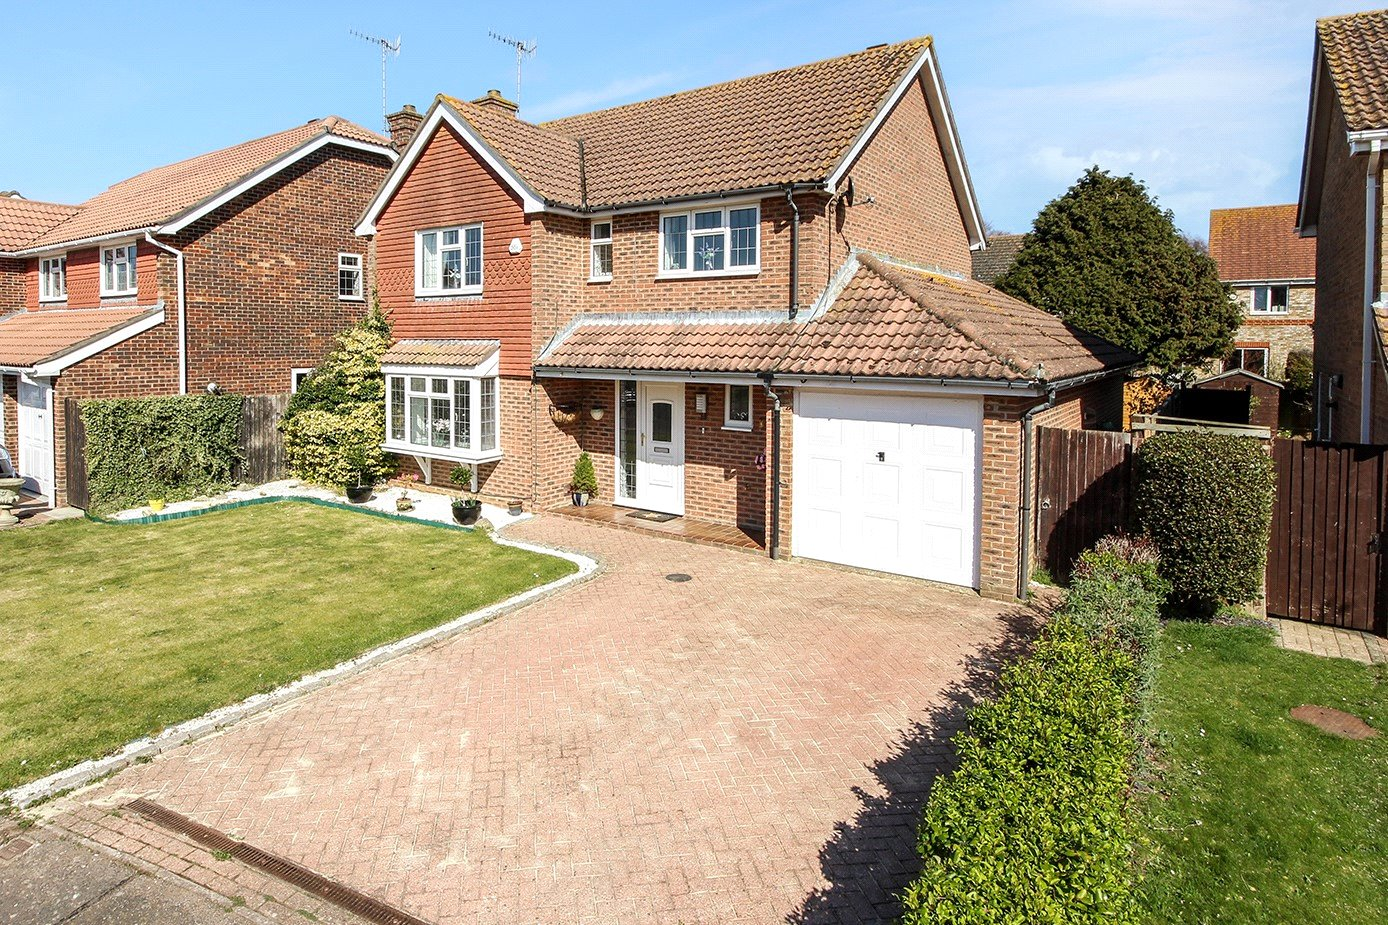 4 bed house for sale in Apple Tree Walk, Climping  - Property Image 1